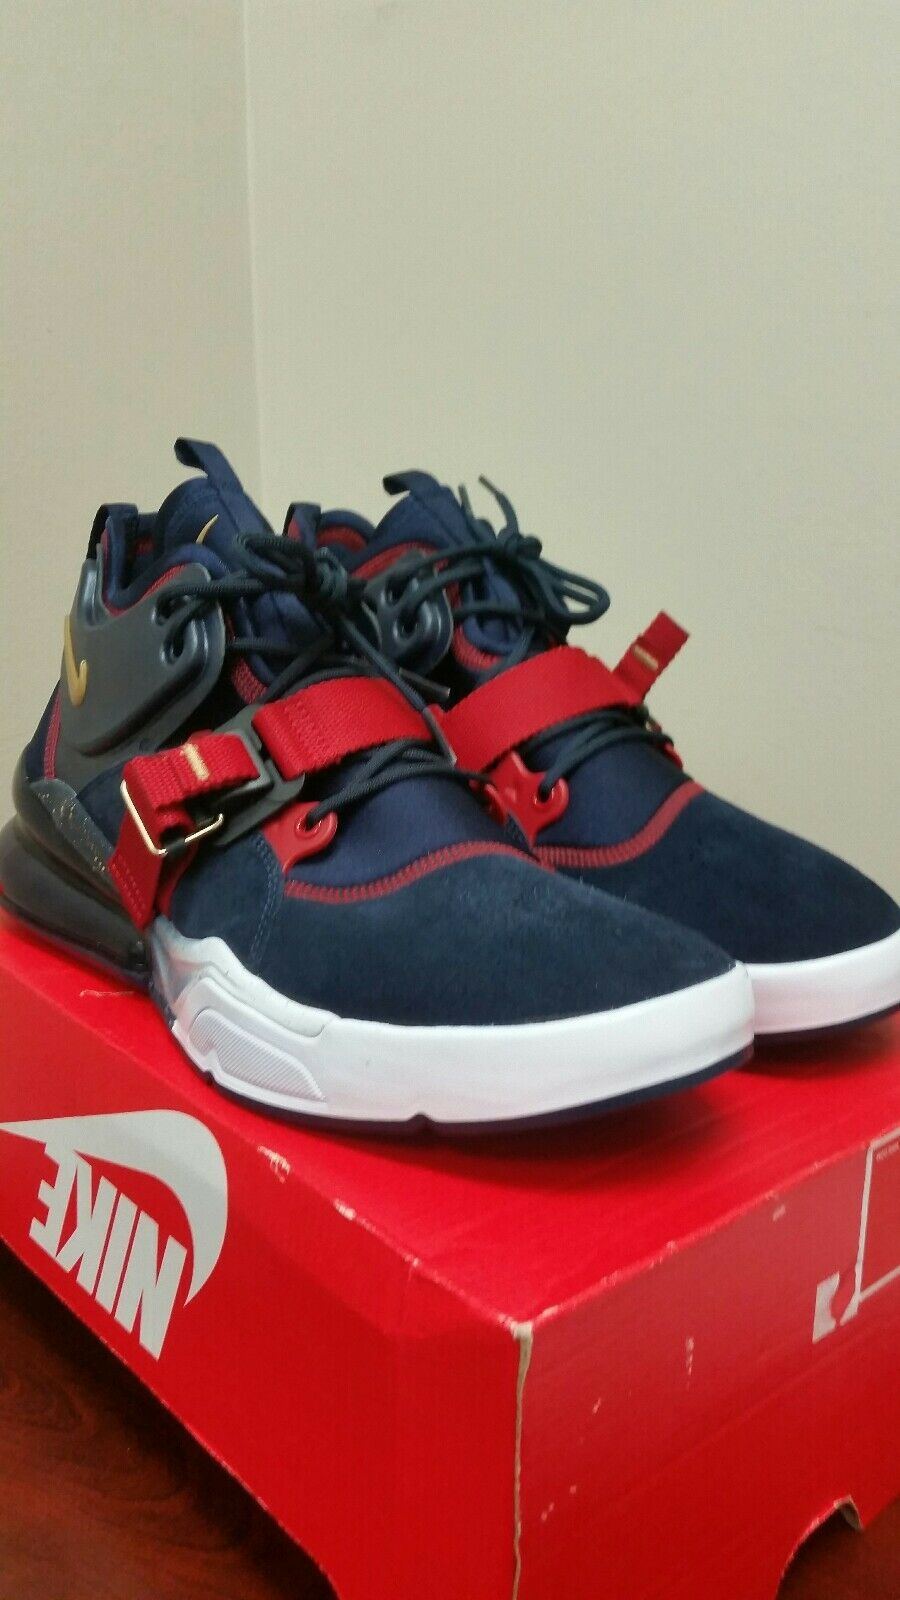 NIKE AIR FORCE 270 AH6772-400 Olympic Team bluee gold red Size 11.5 men New